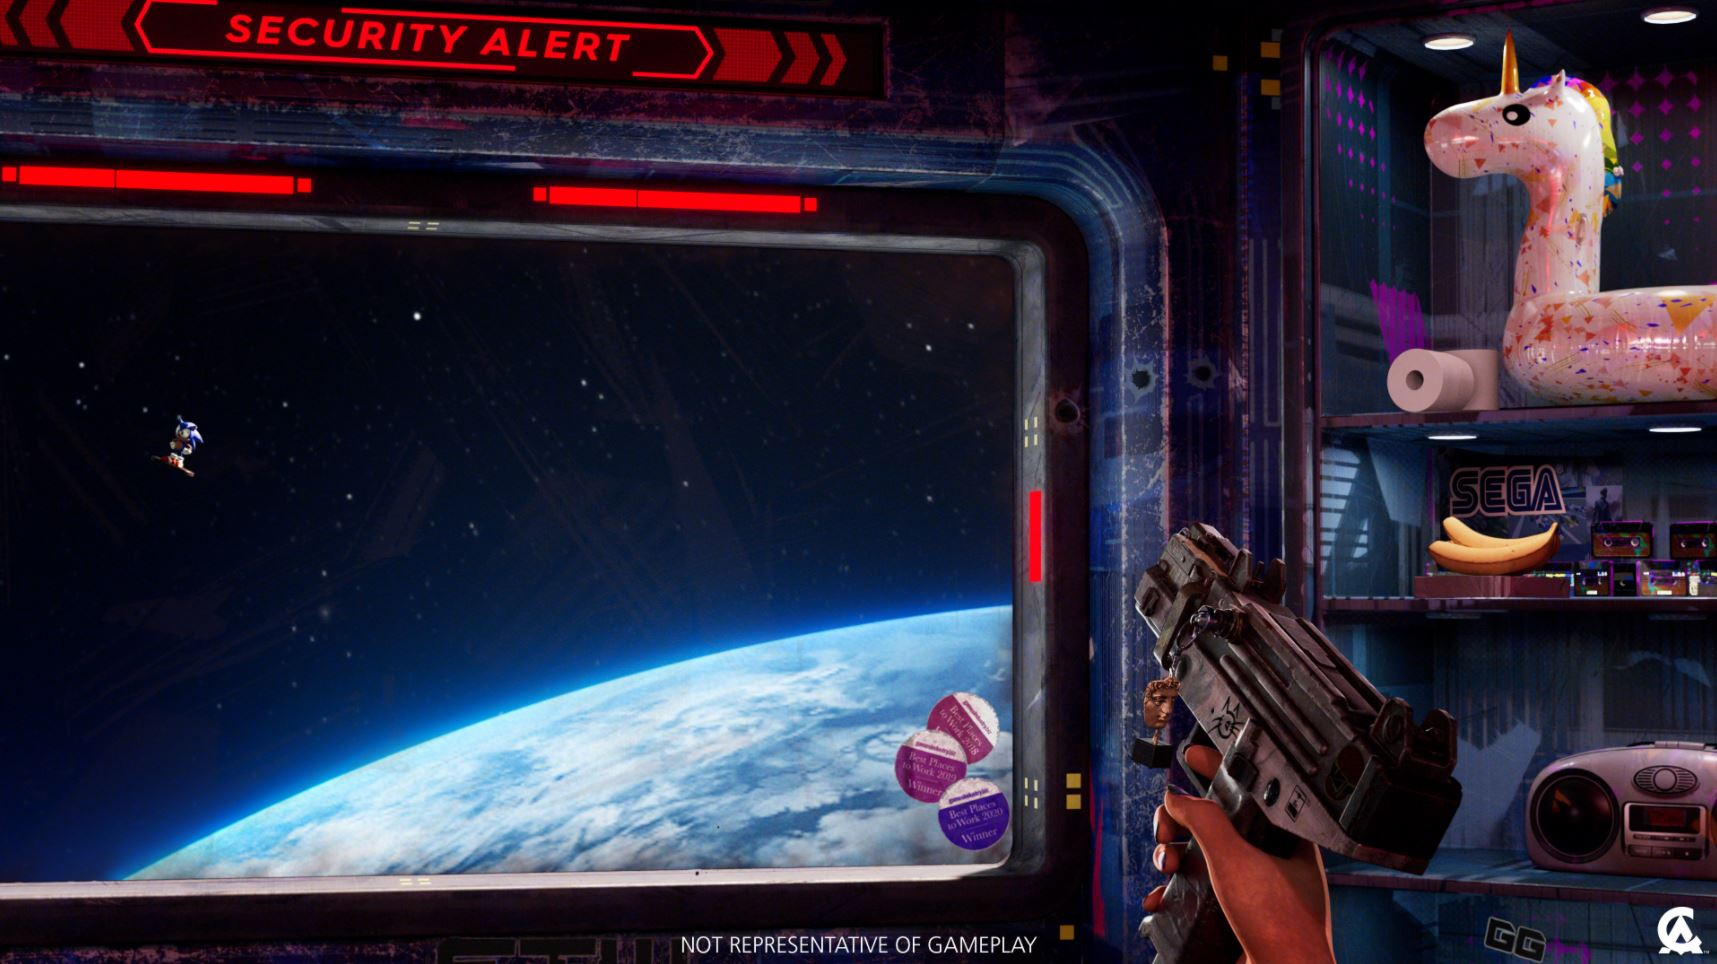 alien-isolation-developers-new-sci-fi-fps-shares-first-image-and-looks-to-be-sega-themed